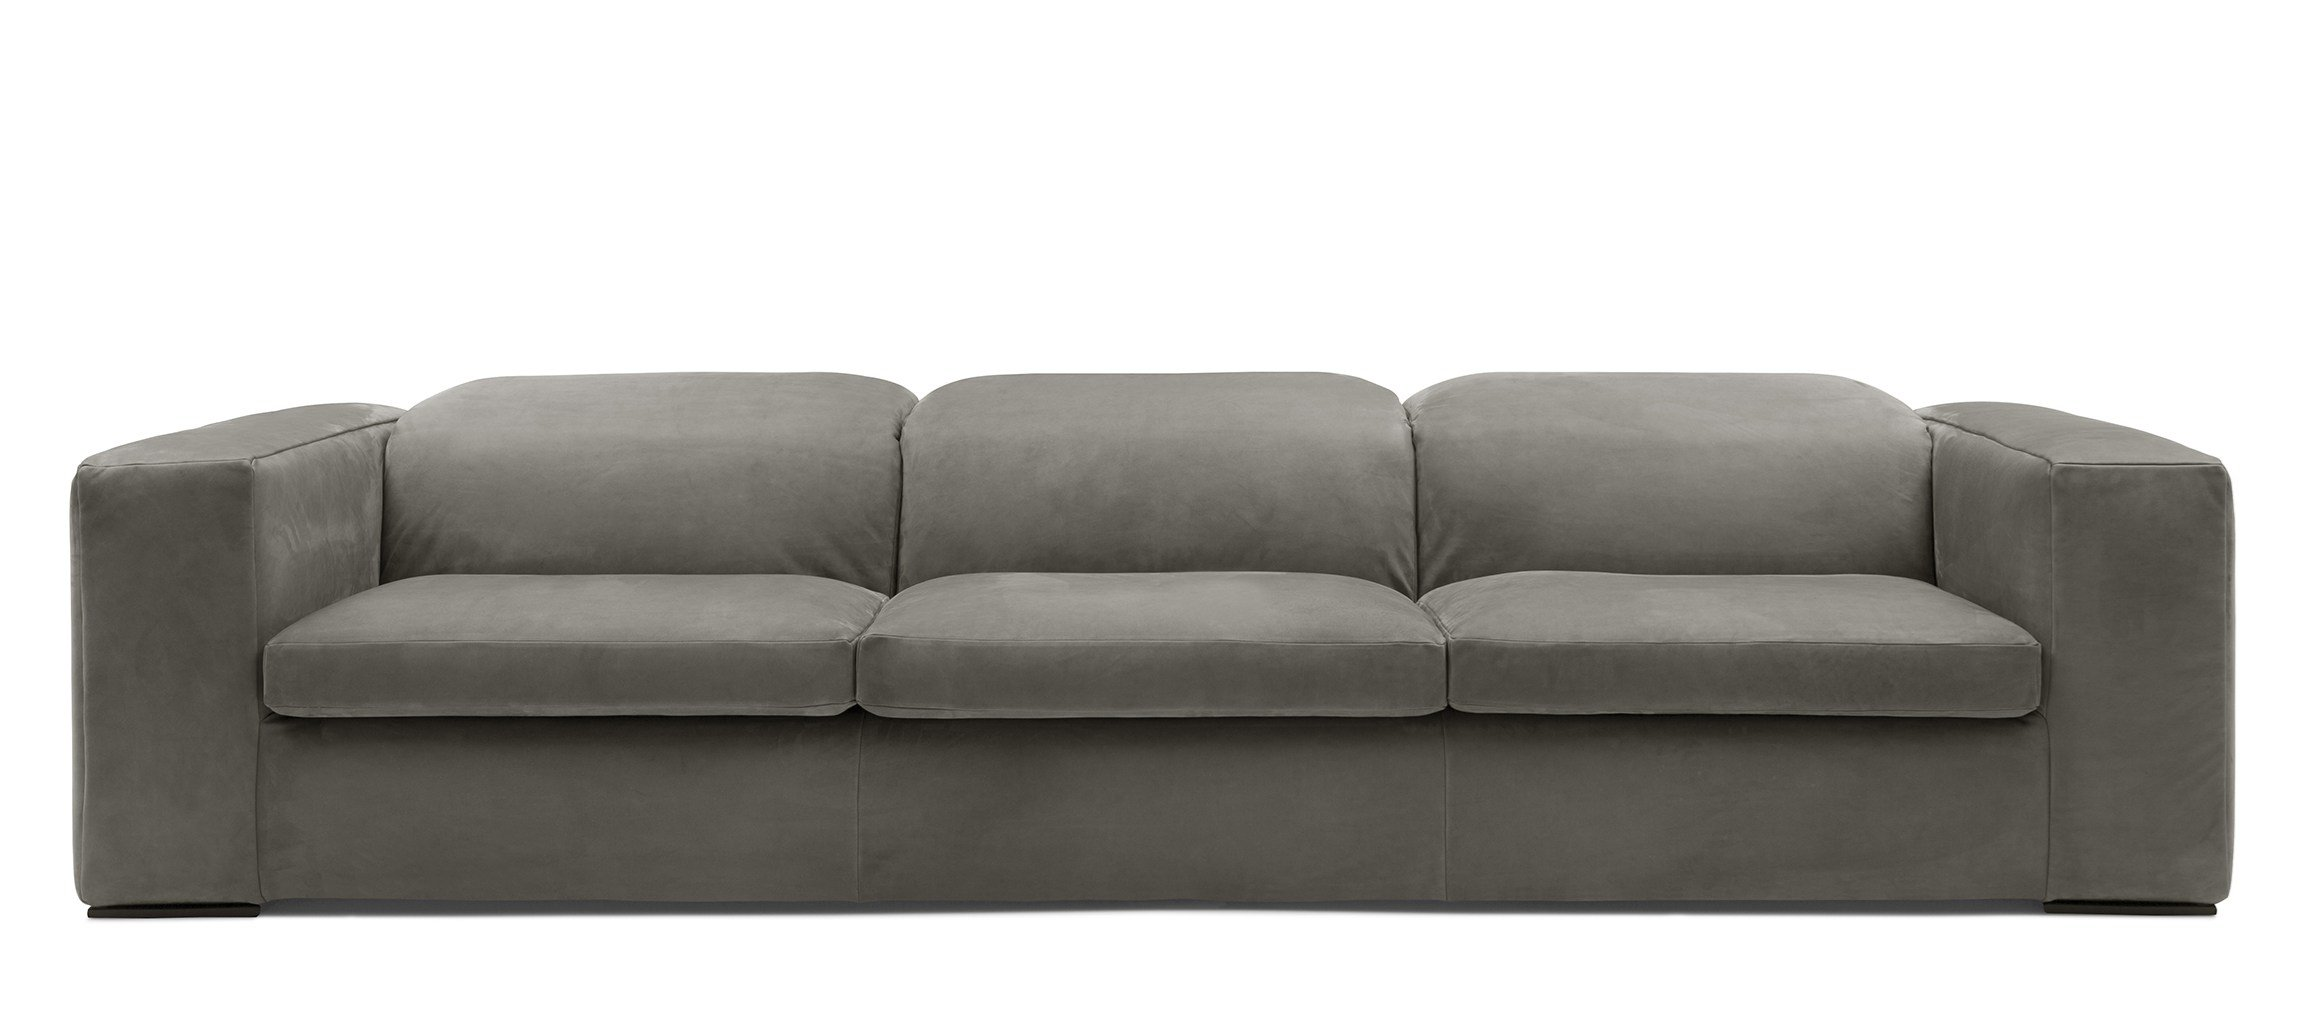 Sectional fabric sofa MIAMI By Bodema design Giuseppe Manzoni